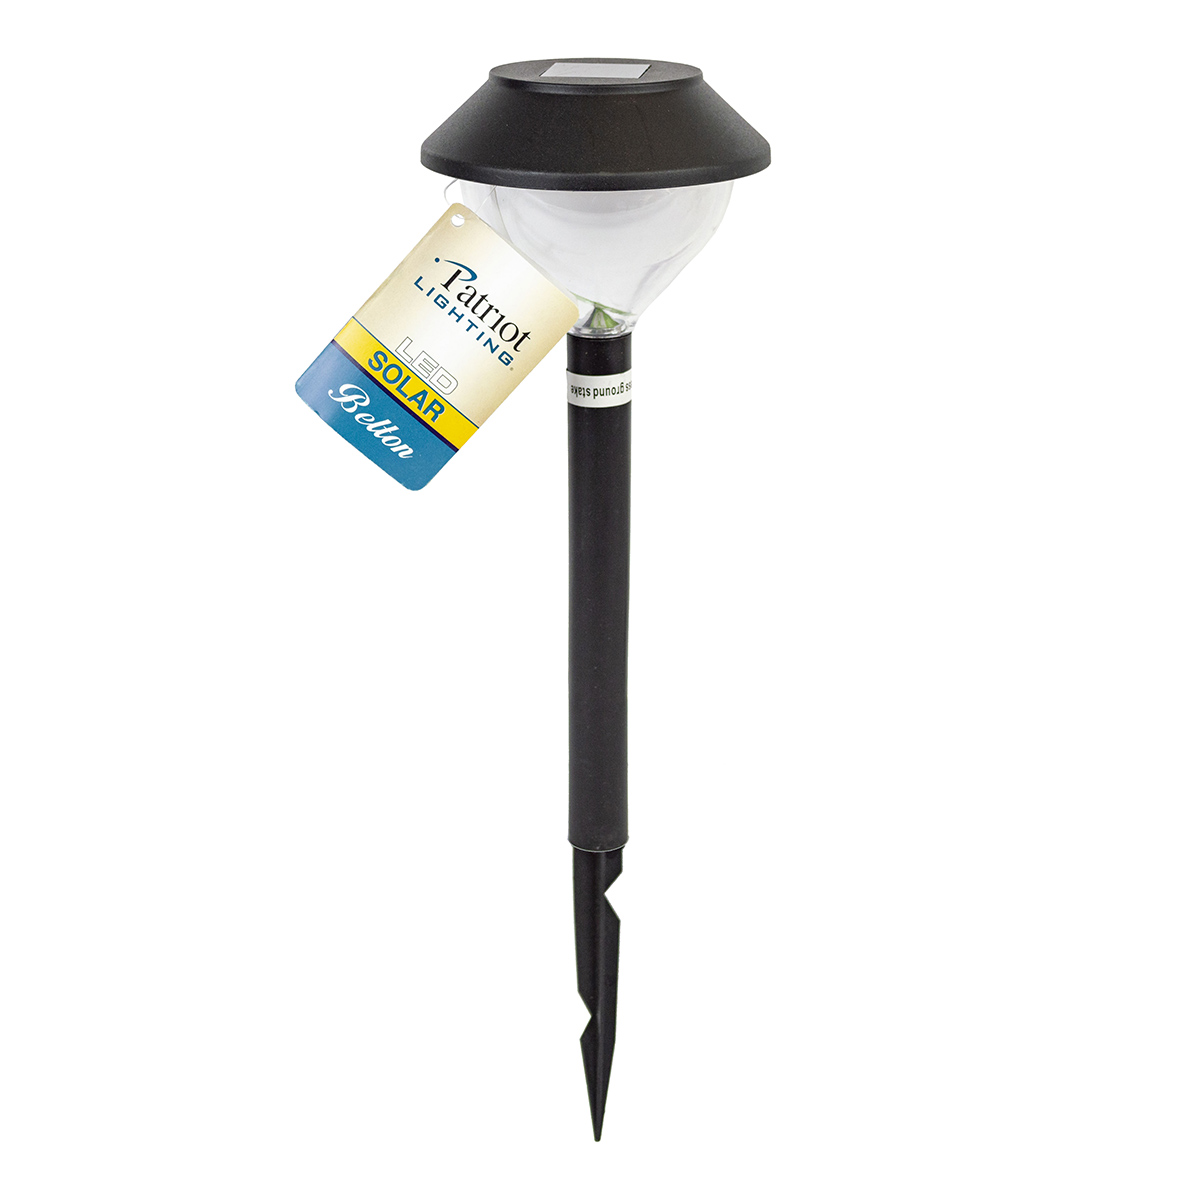 Alpan Mini Solar Light 1.2 Lumens, Black